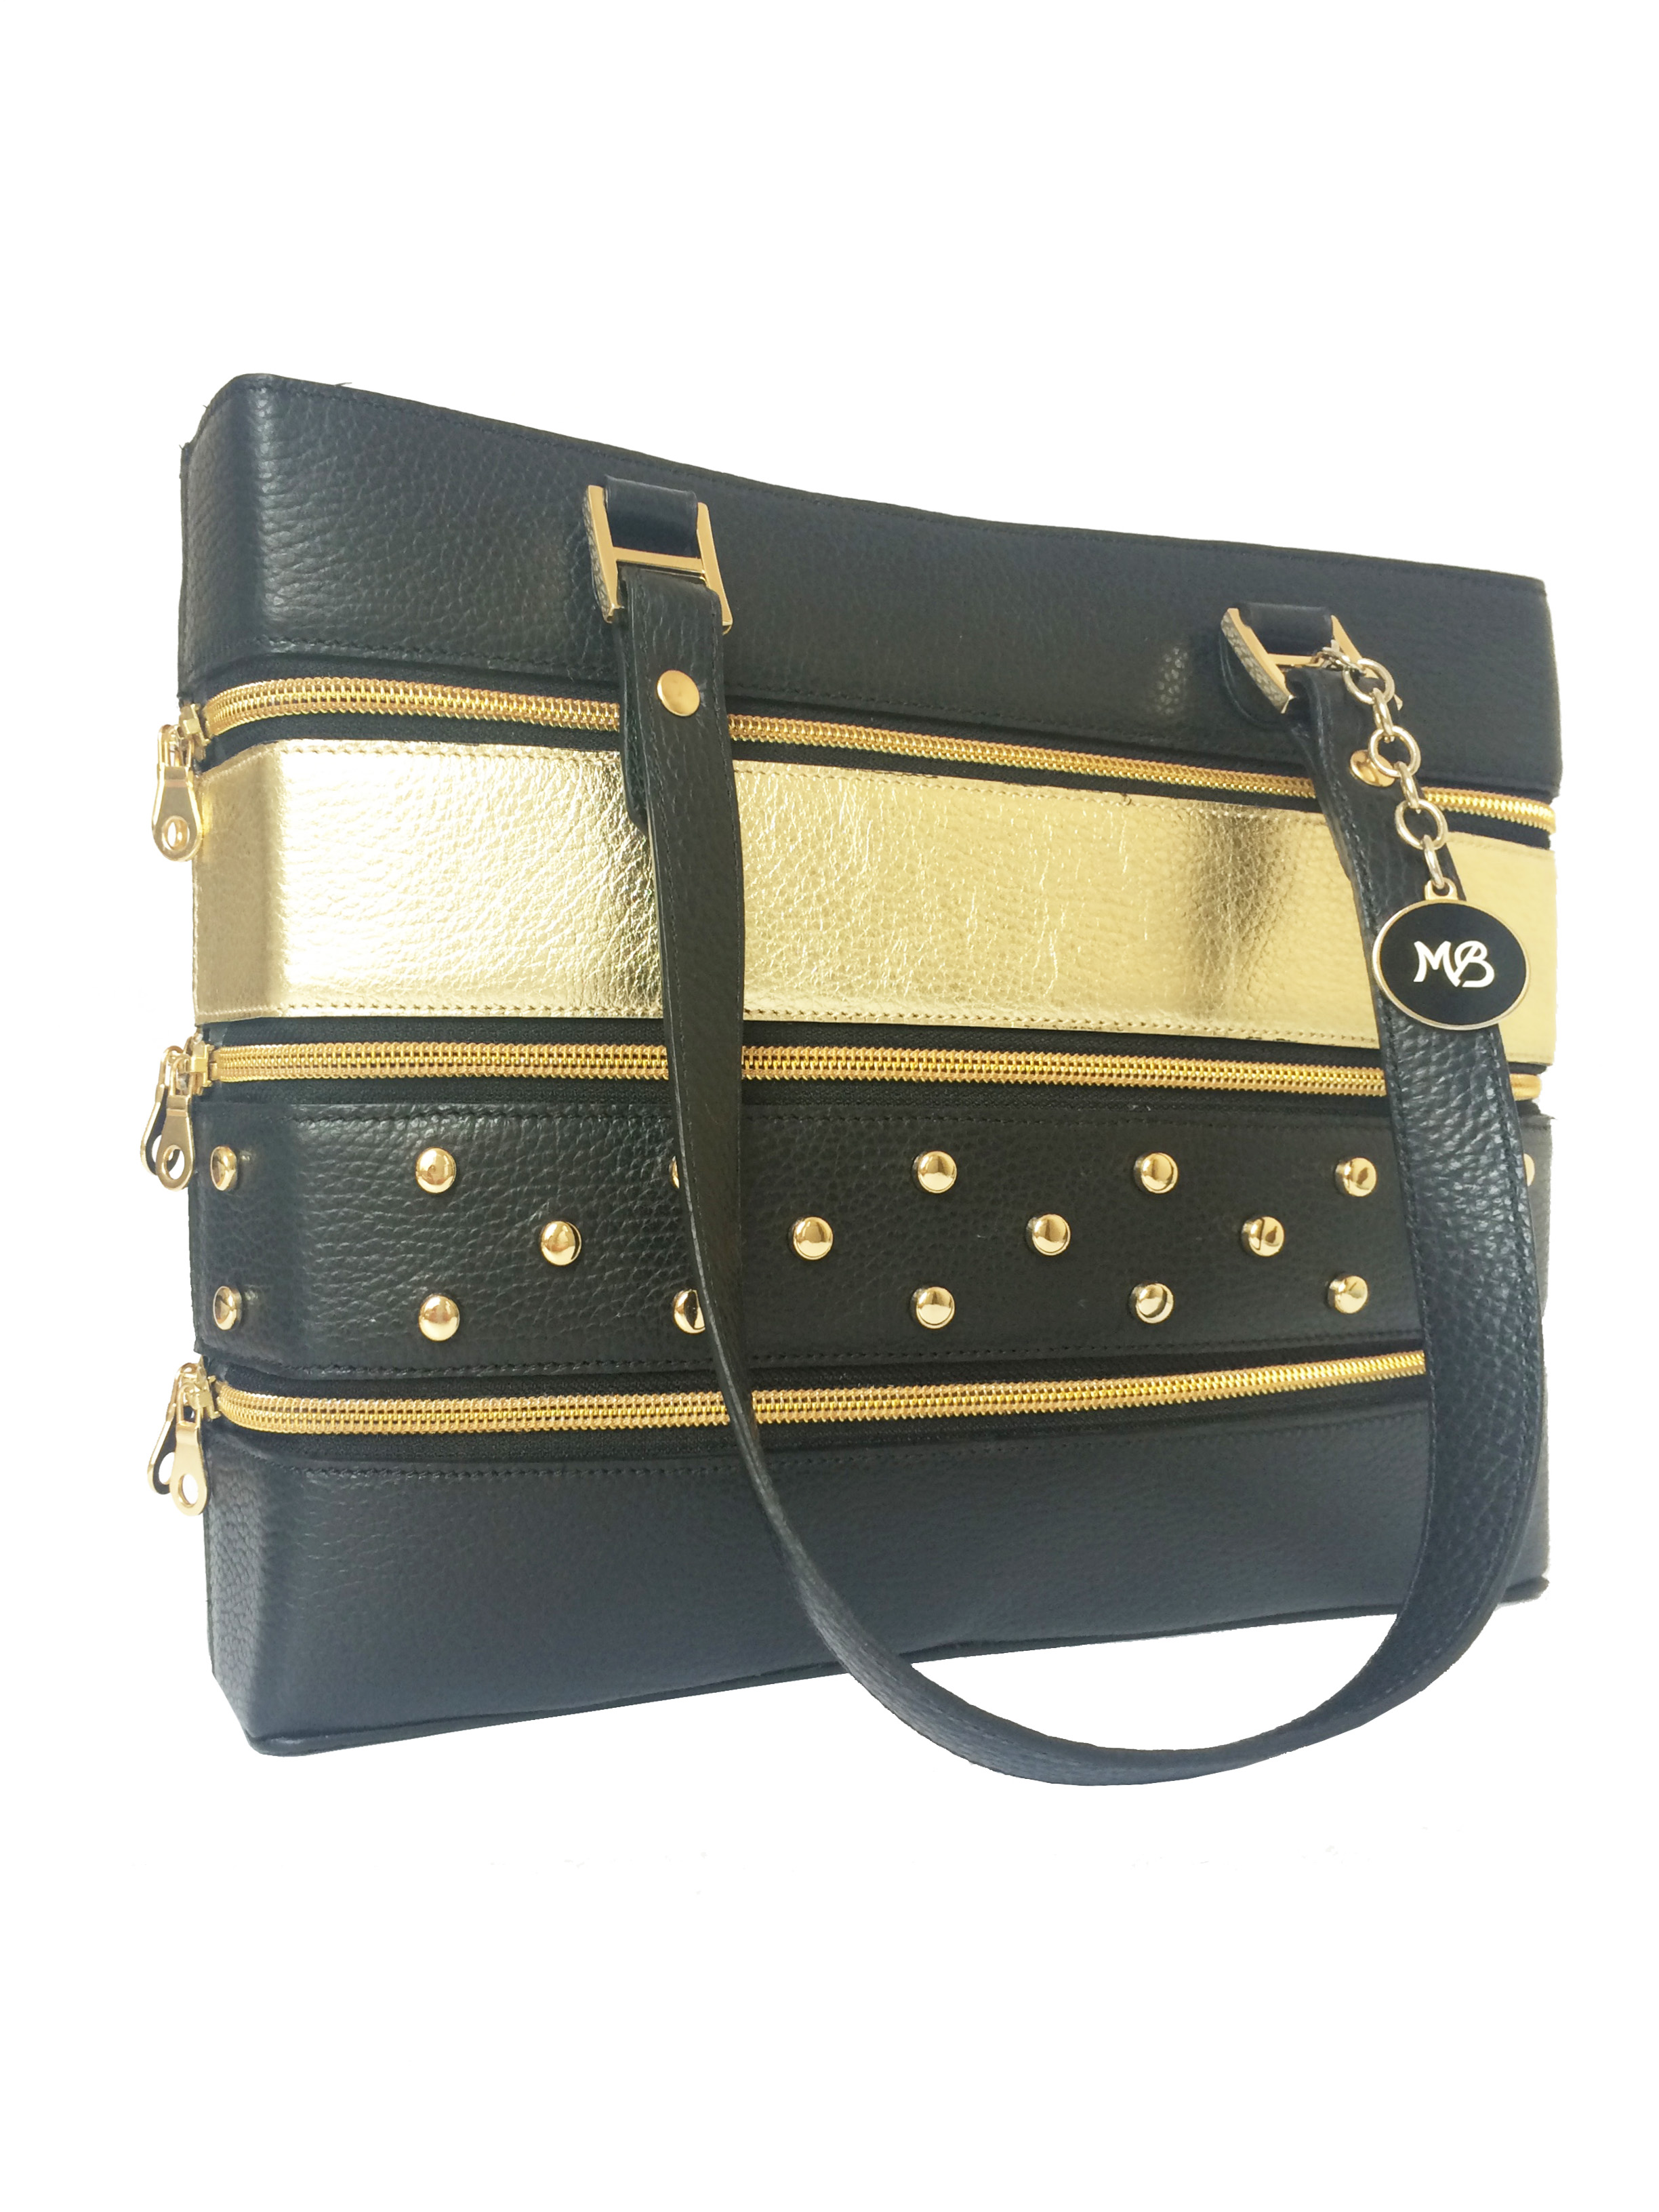 BE wright SHOPPINGDIMENSIONS: 30x25x10 cmMATERIALS: Italian Leather.ACCESSORIES COLOUR: Gold and Silver -